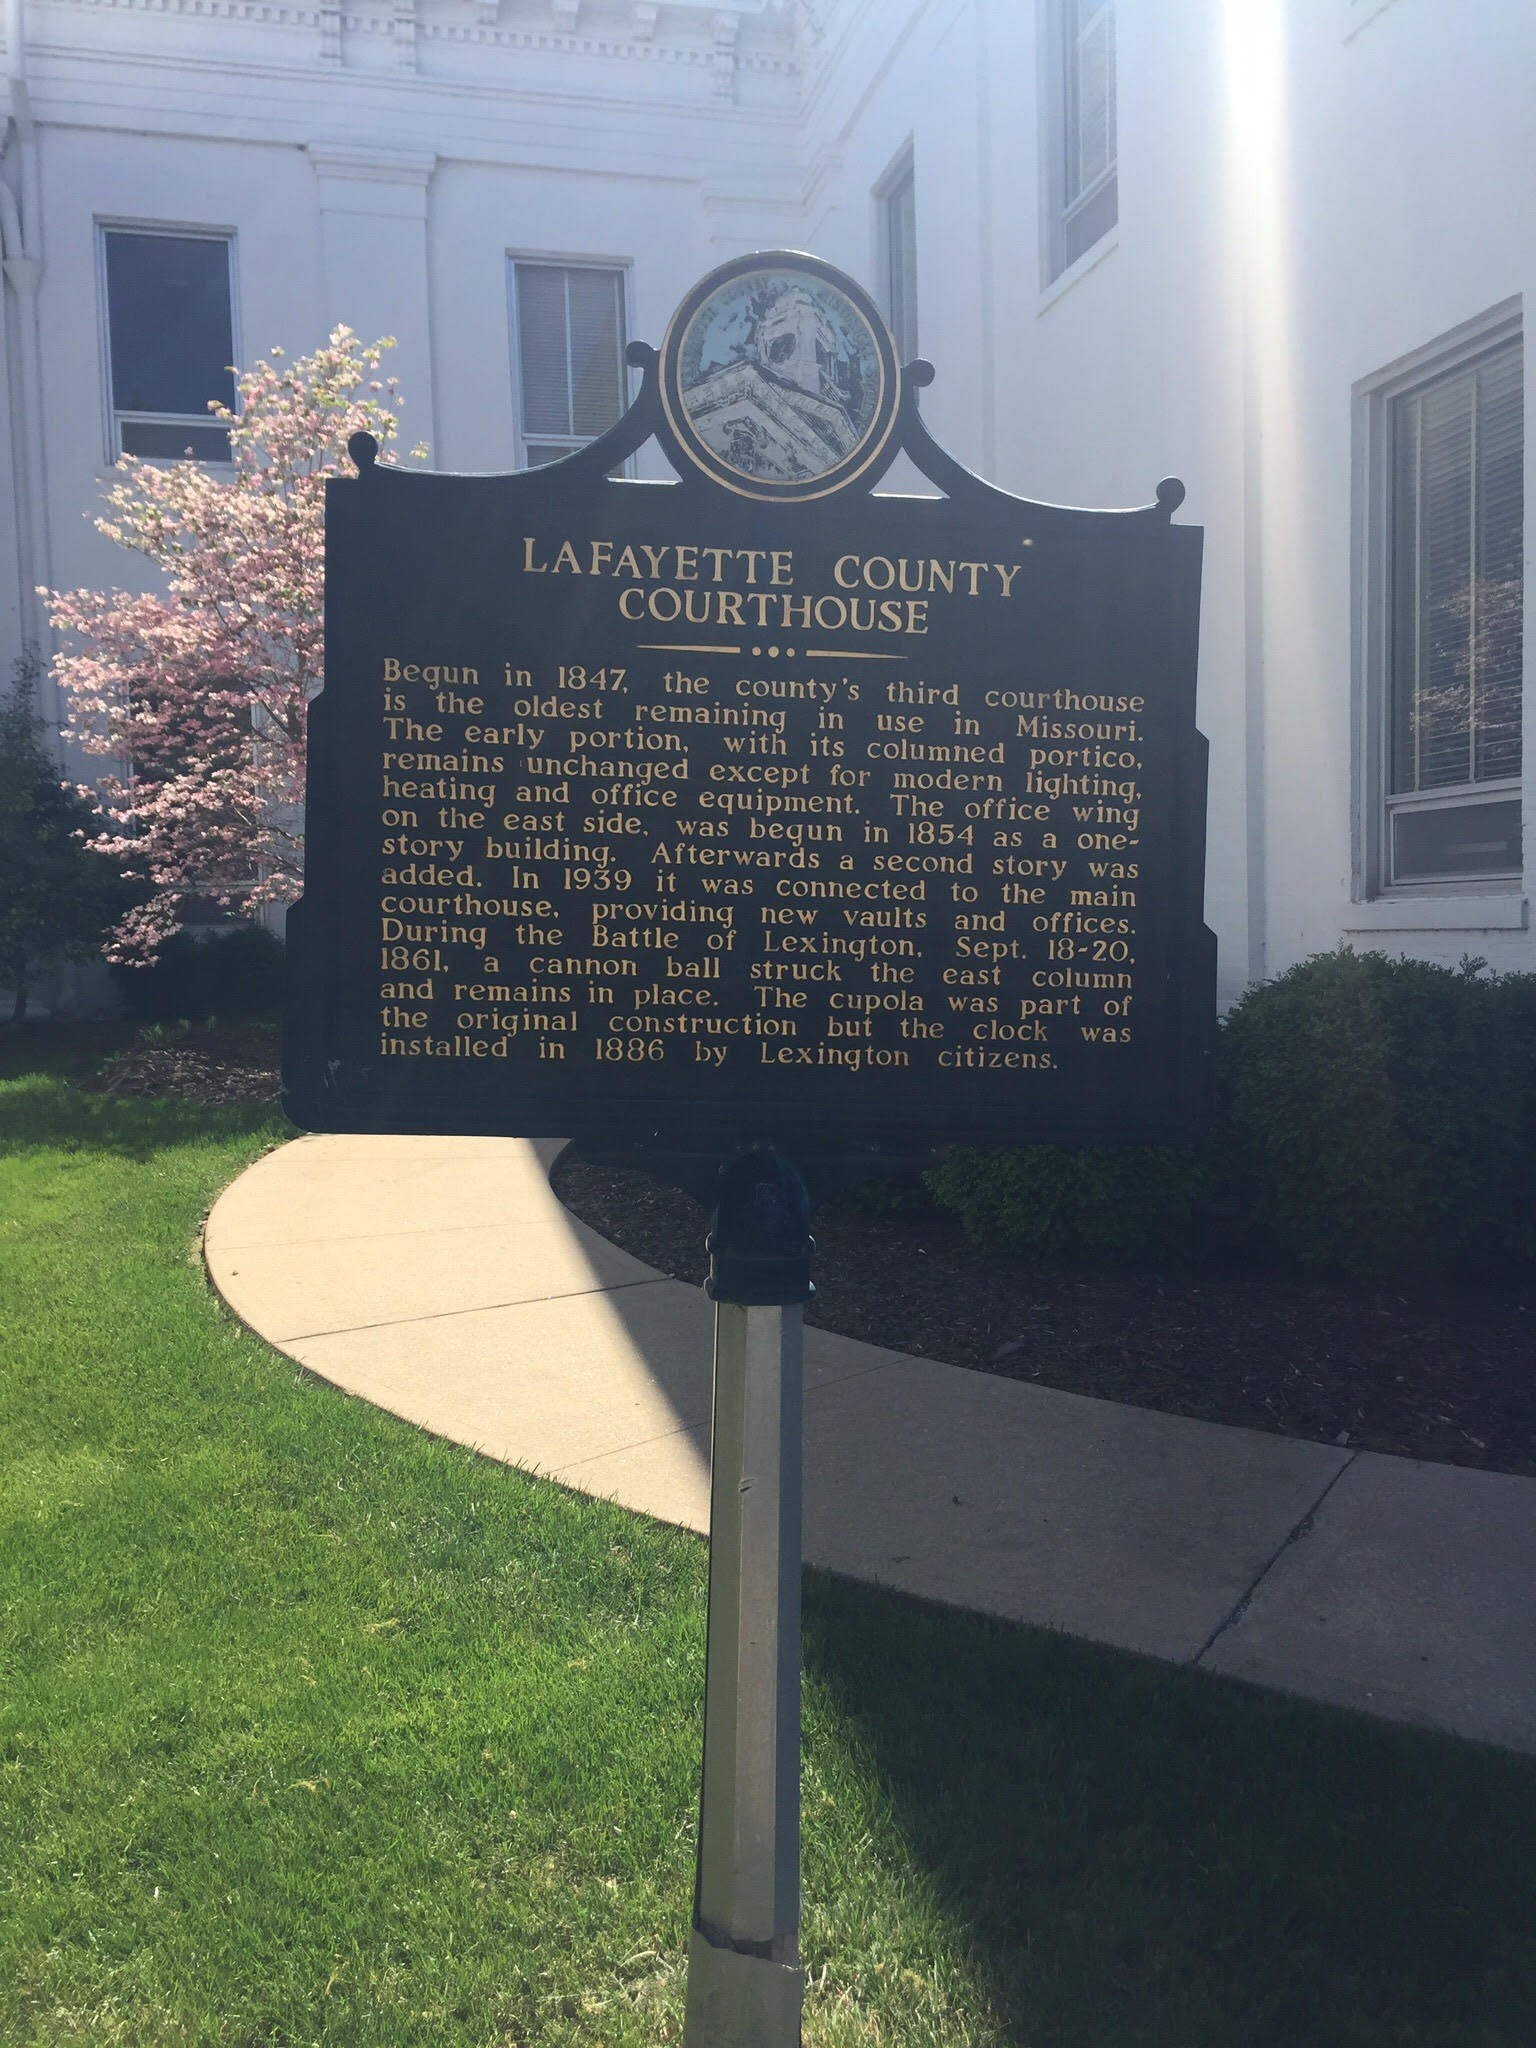 This historical marker outside the courthouse offers a concise history of the structure and the courthouses that came before it.